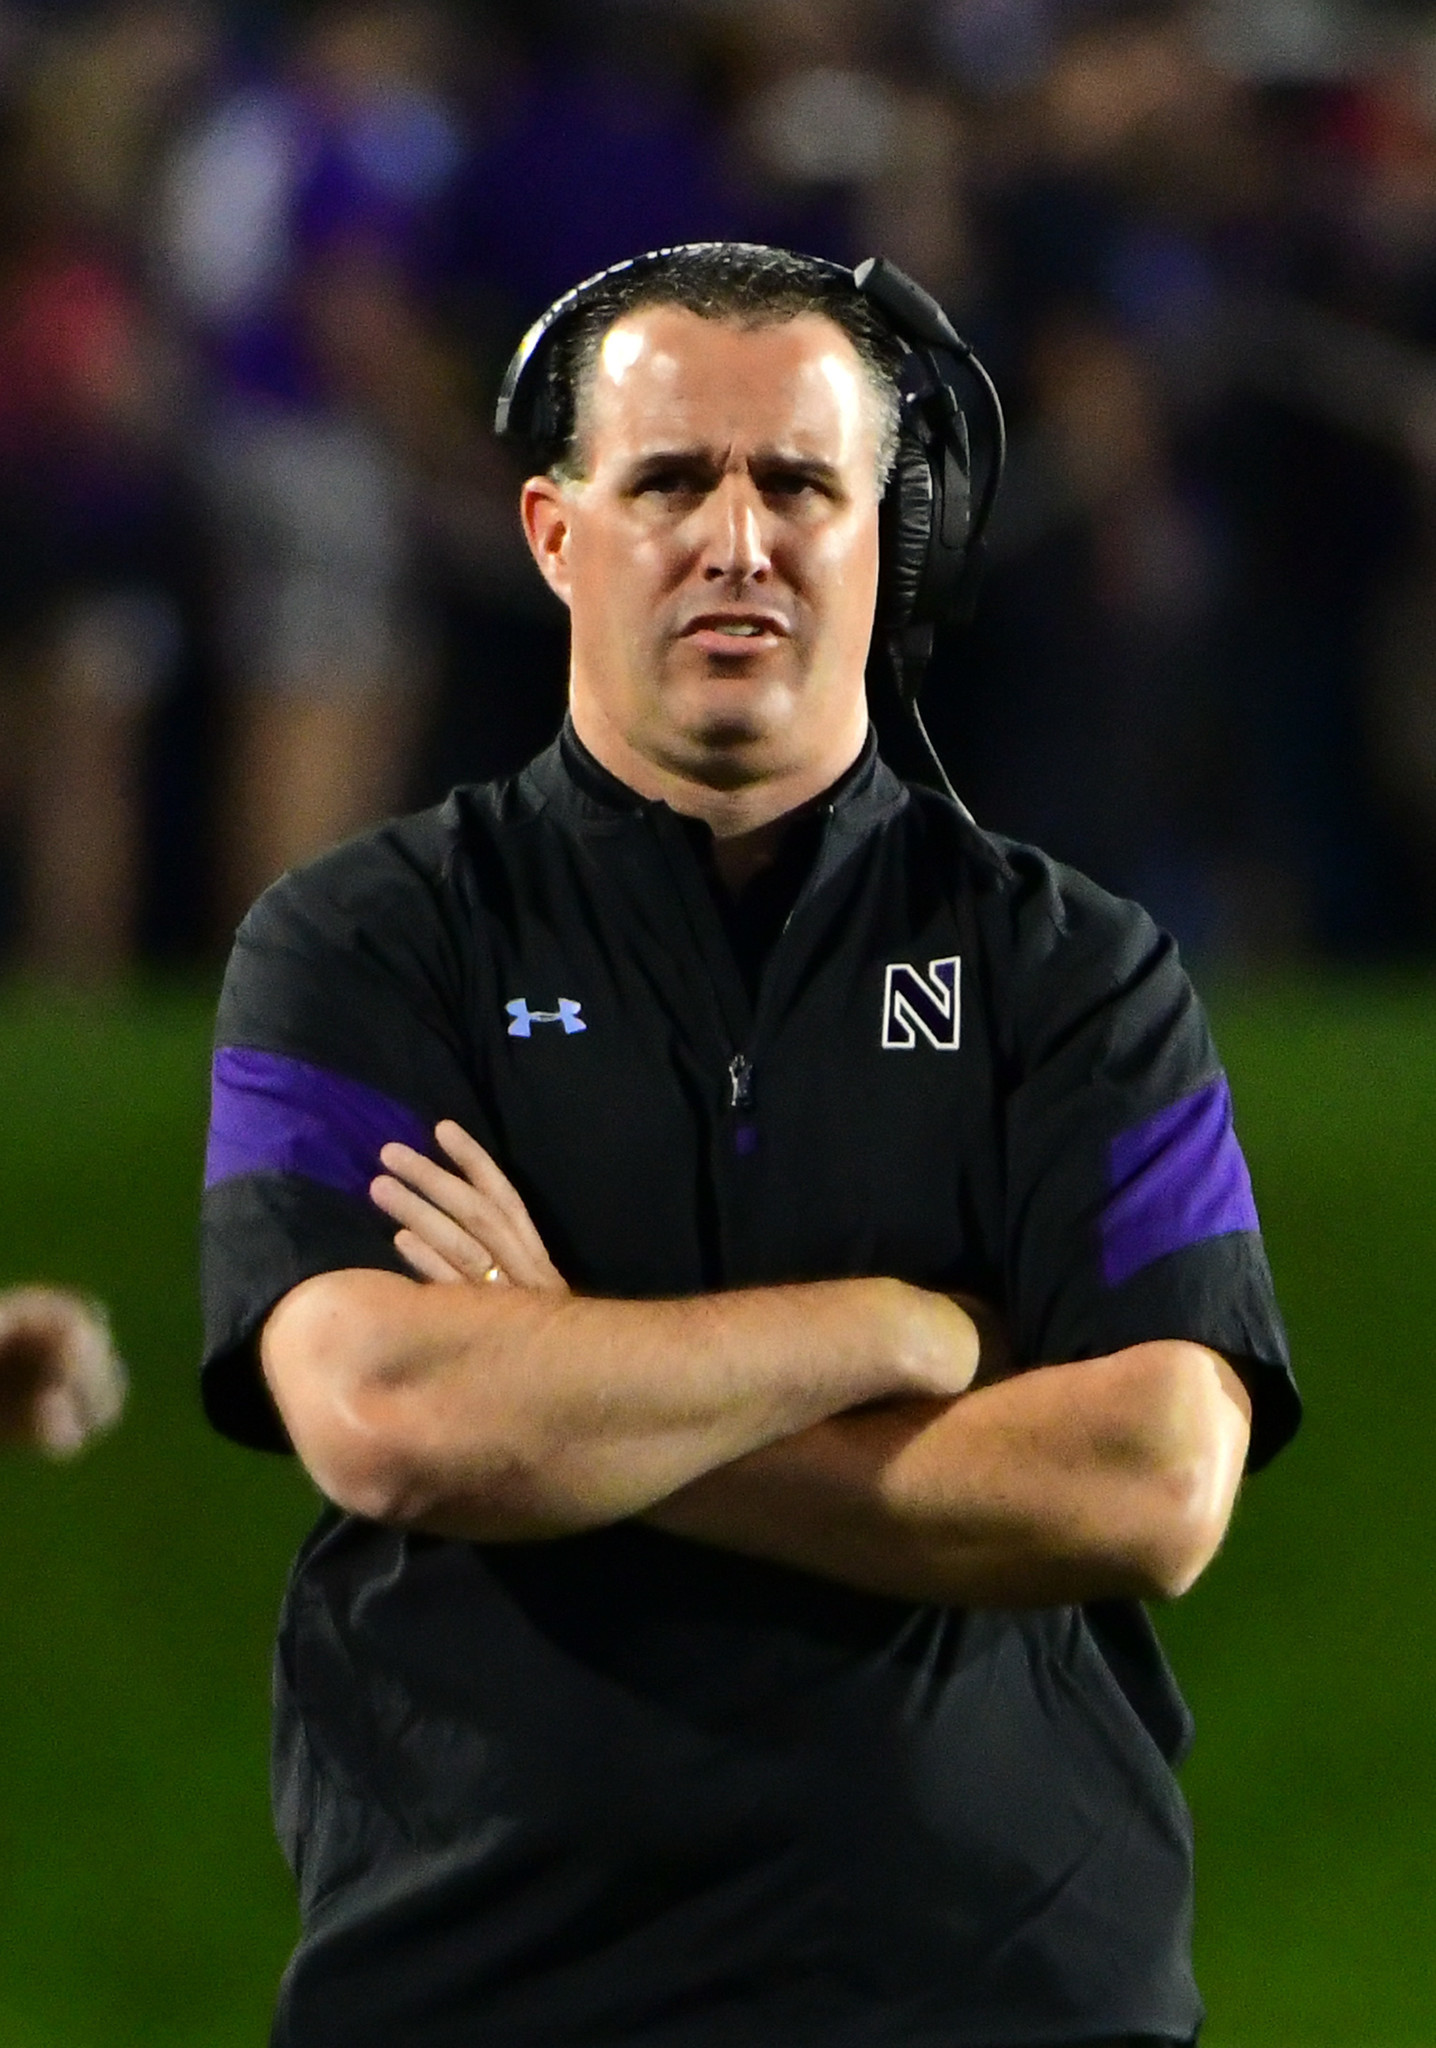 Ct-northwestern-football-coaching-staff-greenstein-spt-0927-20160926